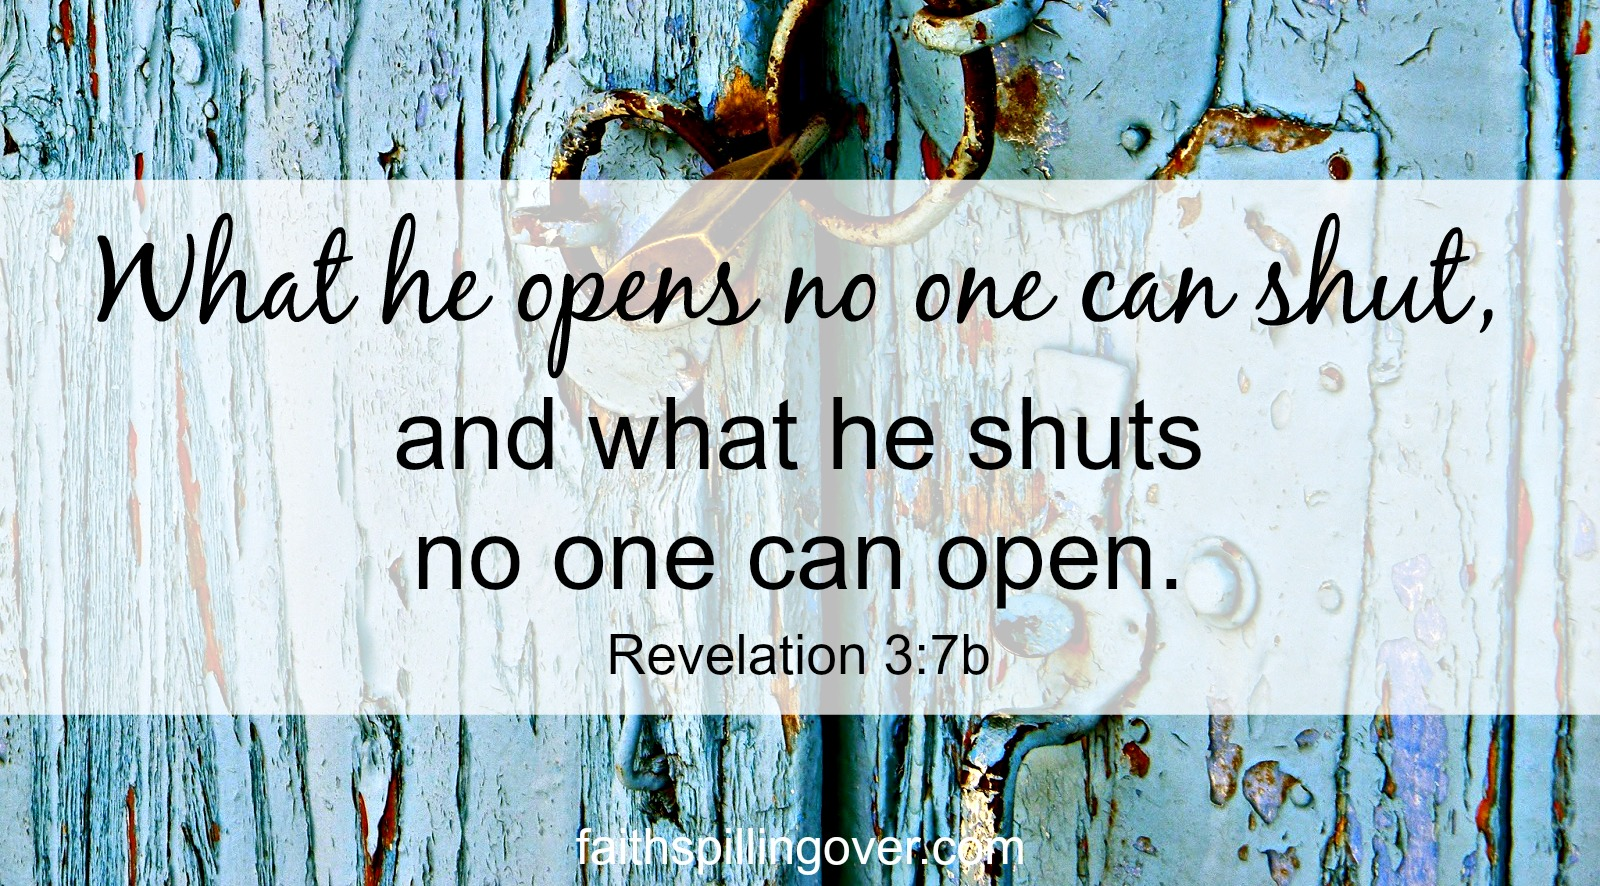 Closed doors disappoint us, but we can always trust God's leading.